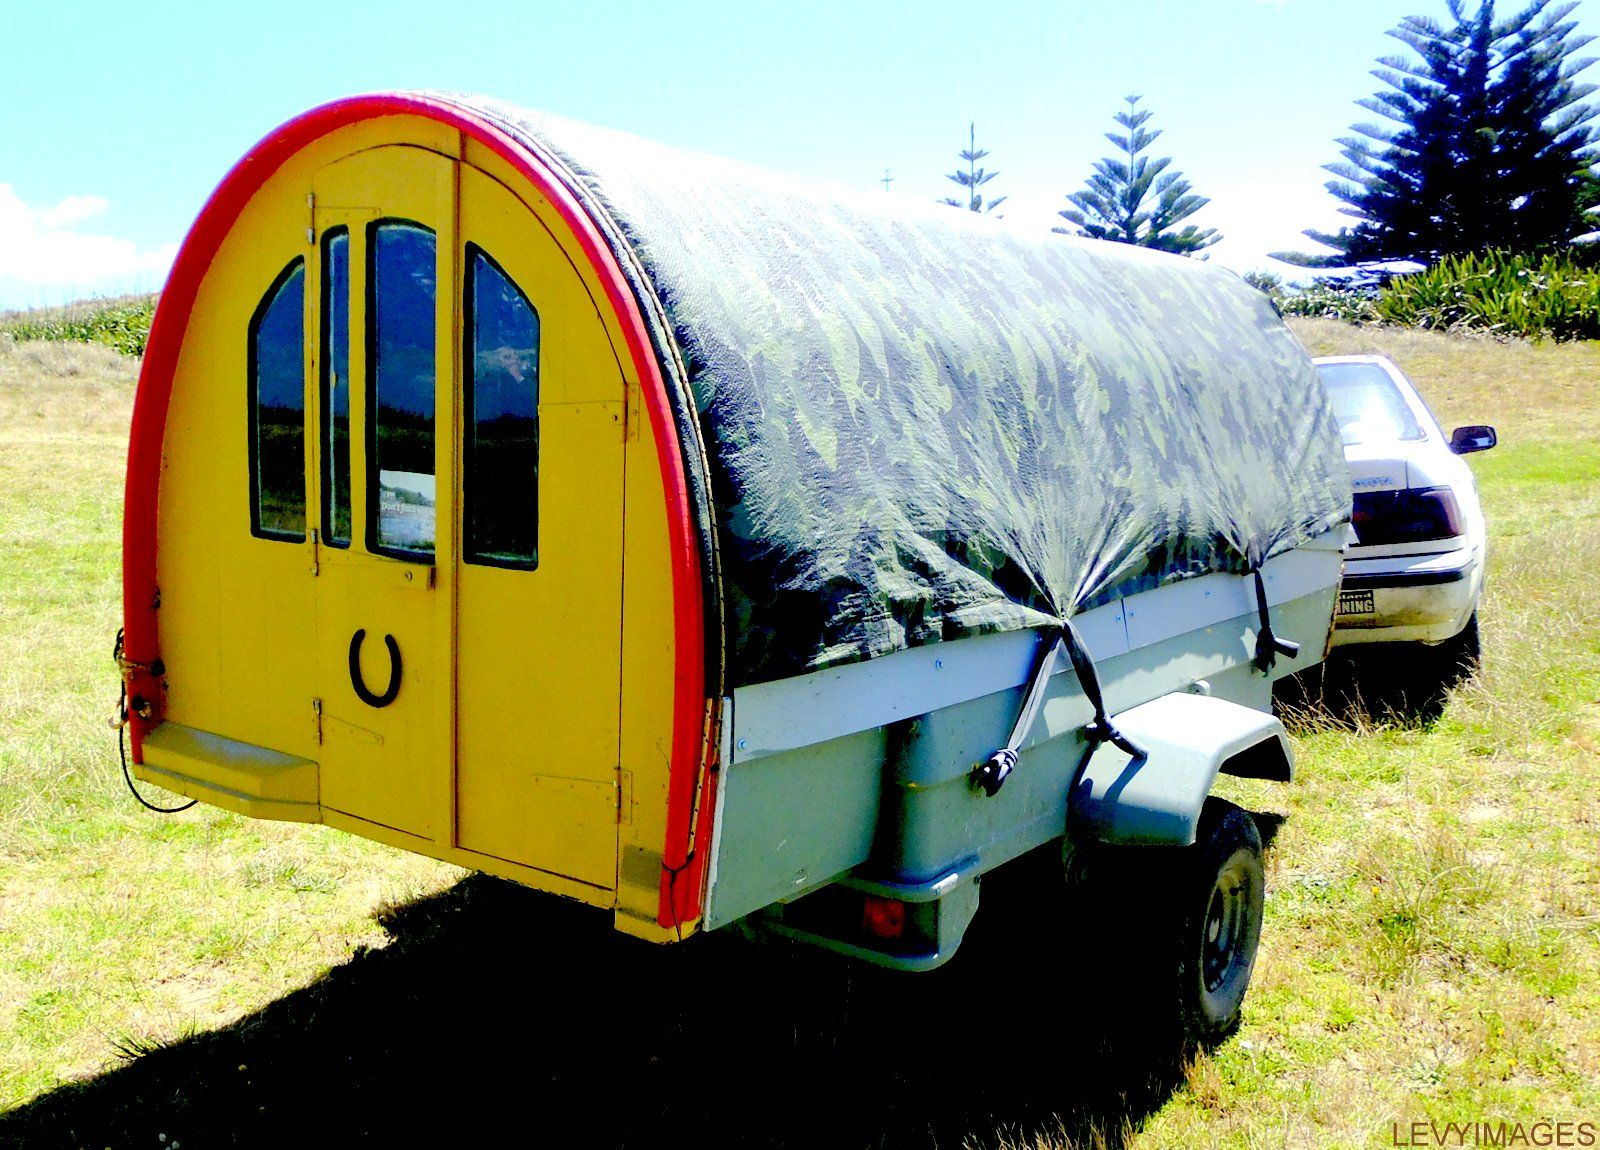 The Flying Tortoise: Betsee. The Inspirational Little Homemade Camping Trailer Cost Only Eighty Two Dollars...